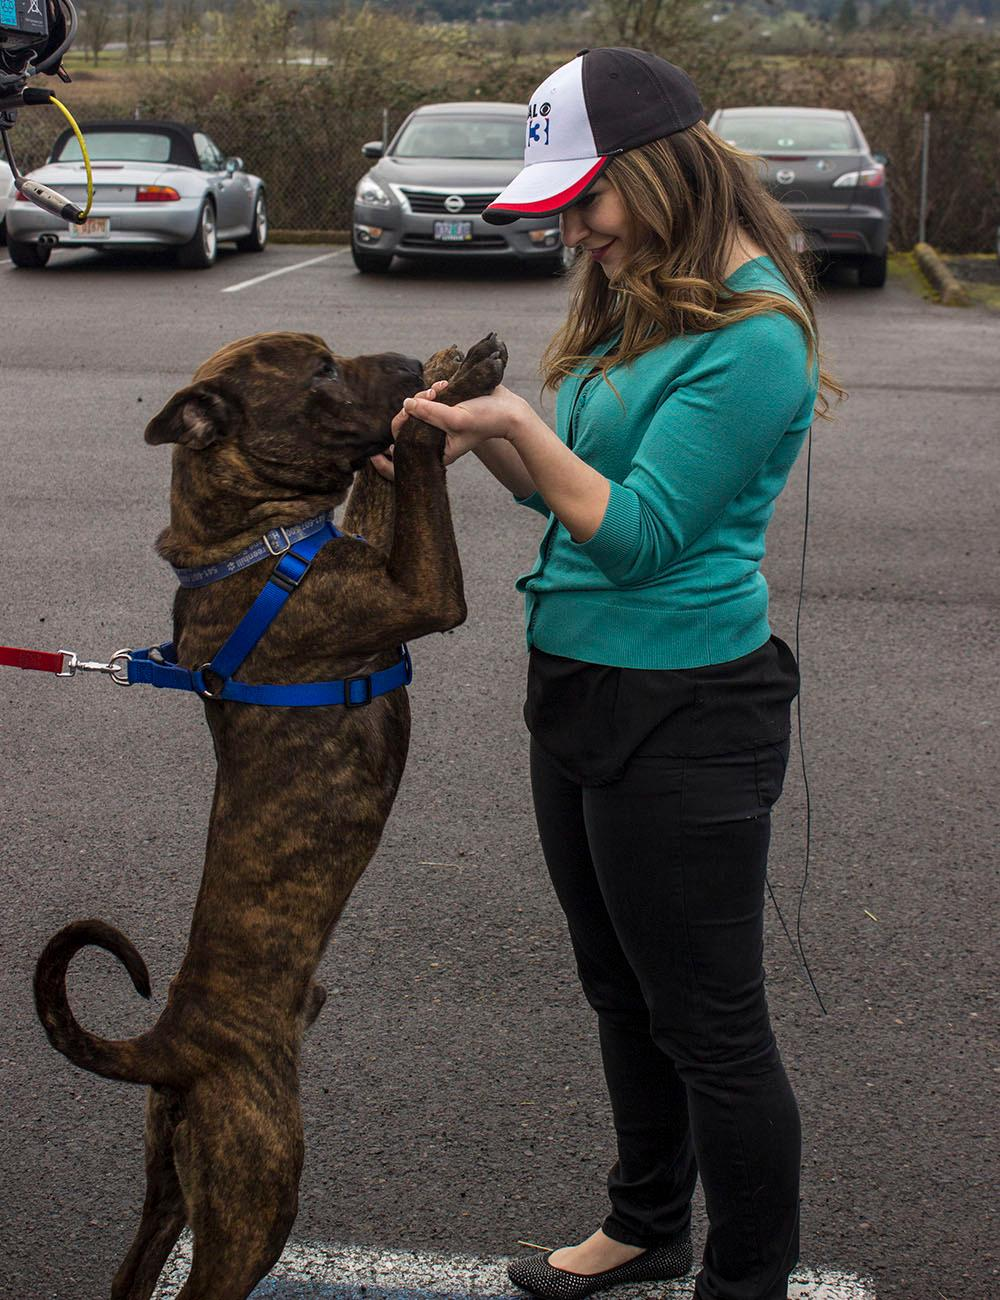 KVAL News teamed up with Greenhill Humane Society Tuesday, March 14, 2017 to raise money for shelter pets and new facilities. To make a donation, call (541) 689-0983 or visit http://www.green-hill.org/donate/. Photo by Amanda Butt